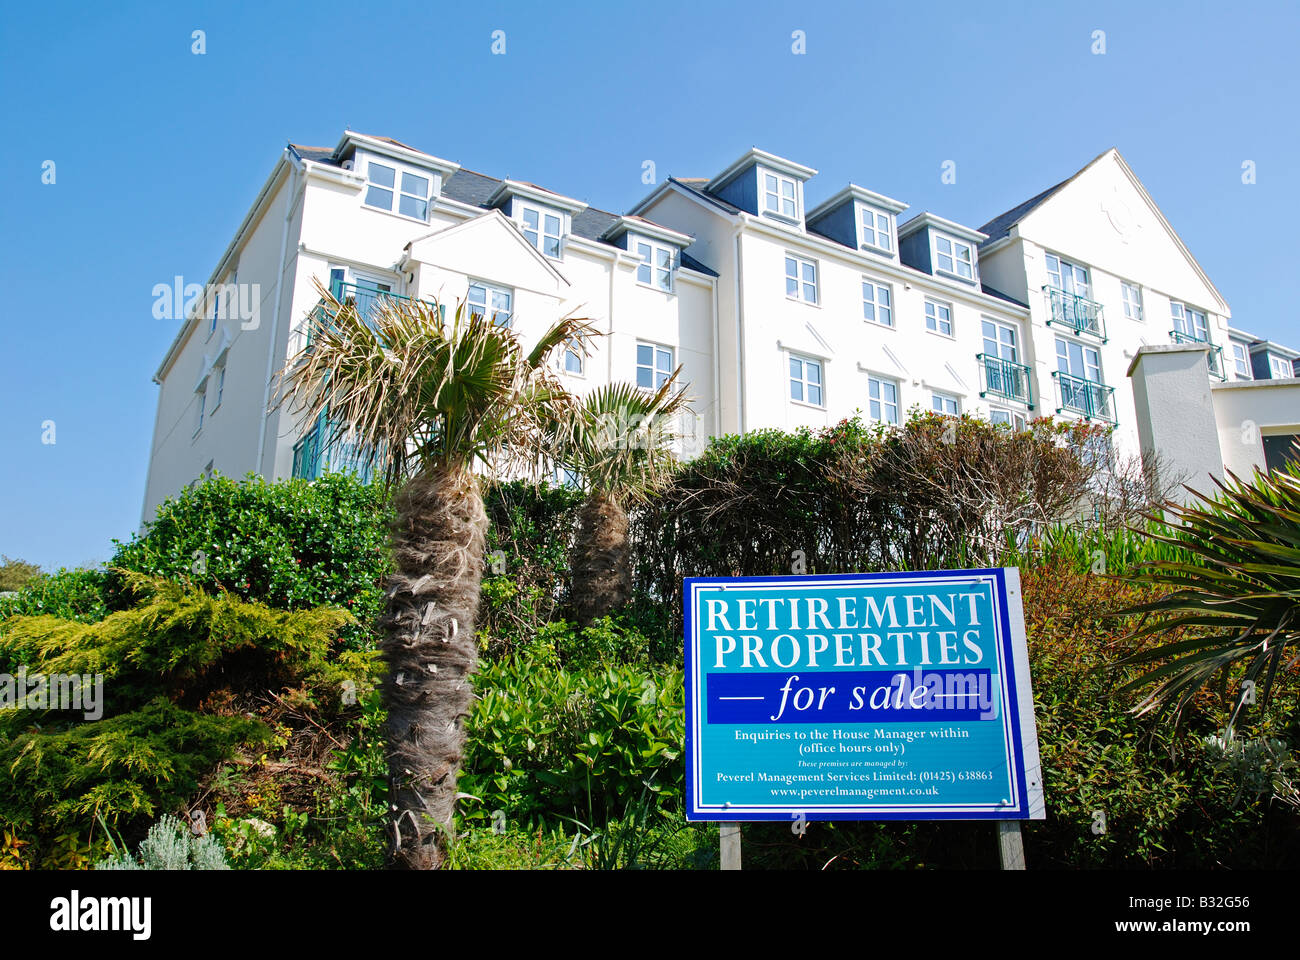 seafront retirement properties for sale at falmouth in cornwall,uk - Stock Image